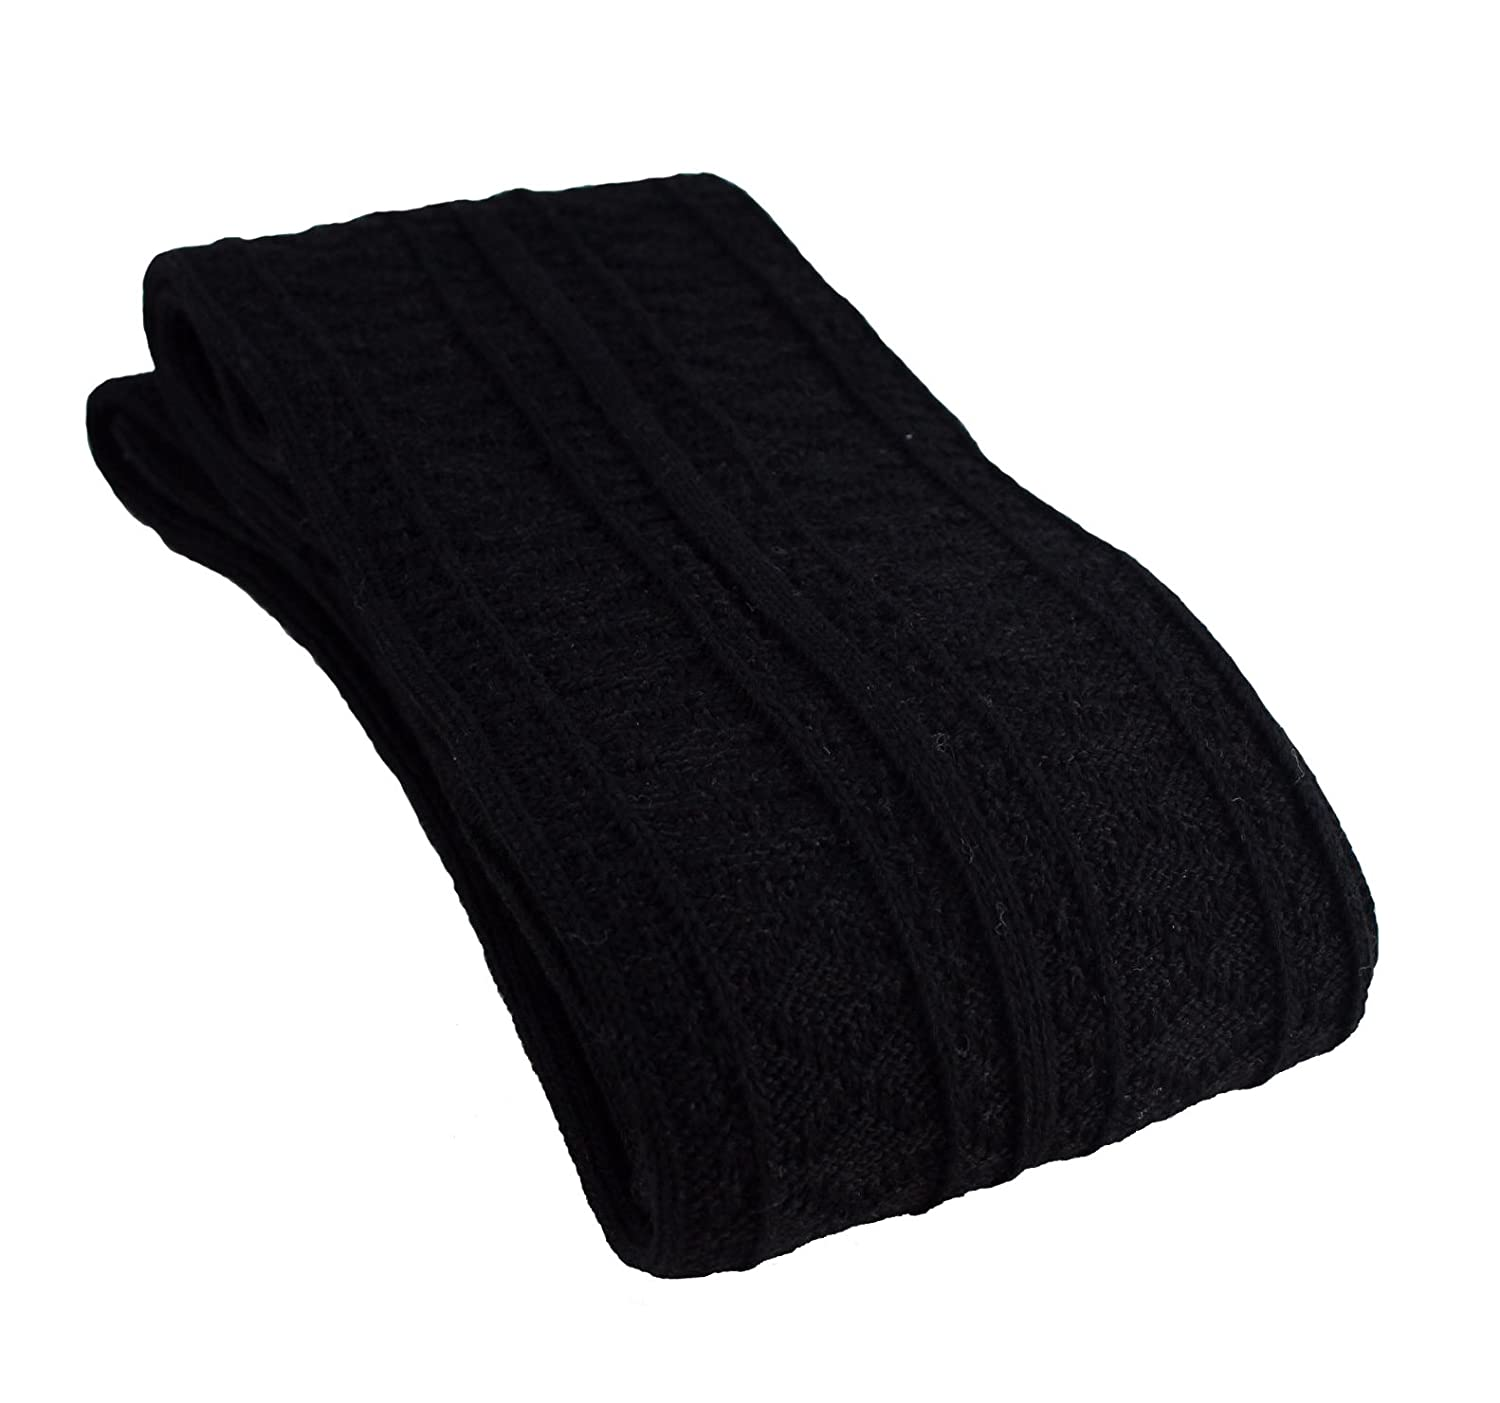 f506212c431 Top 10 wholesale Boot Warmer Pattern - Chinabrands.com